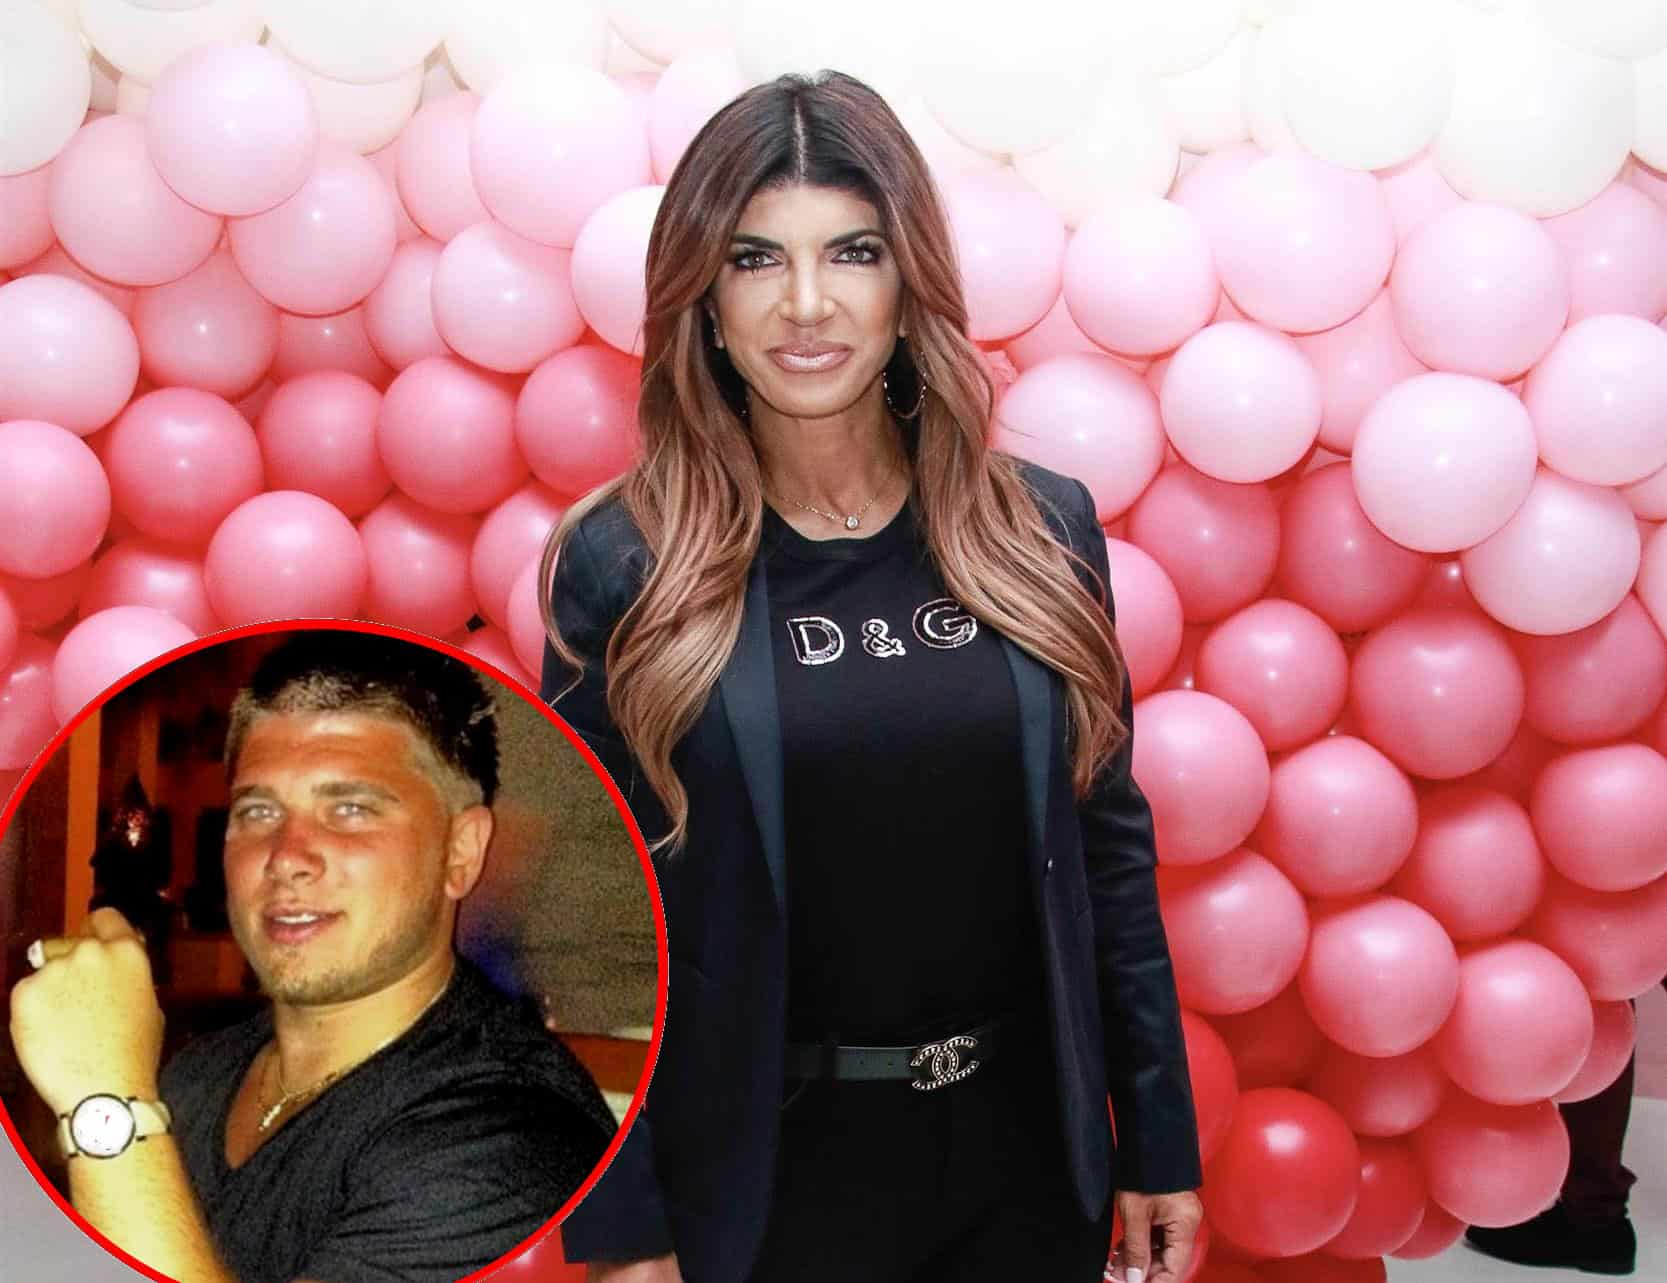 RHONJ's Teresa Giudice Caught Again with Rumored Boyfriend Blake Schreck Last Night in NYC